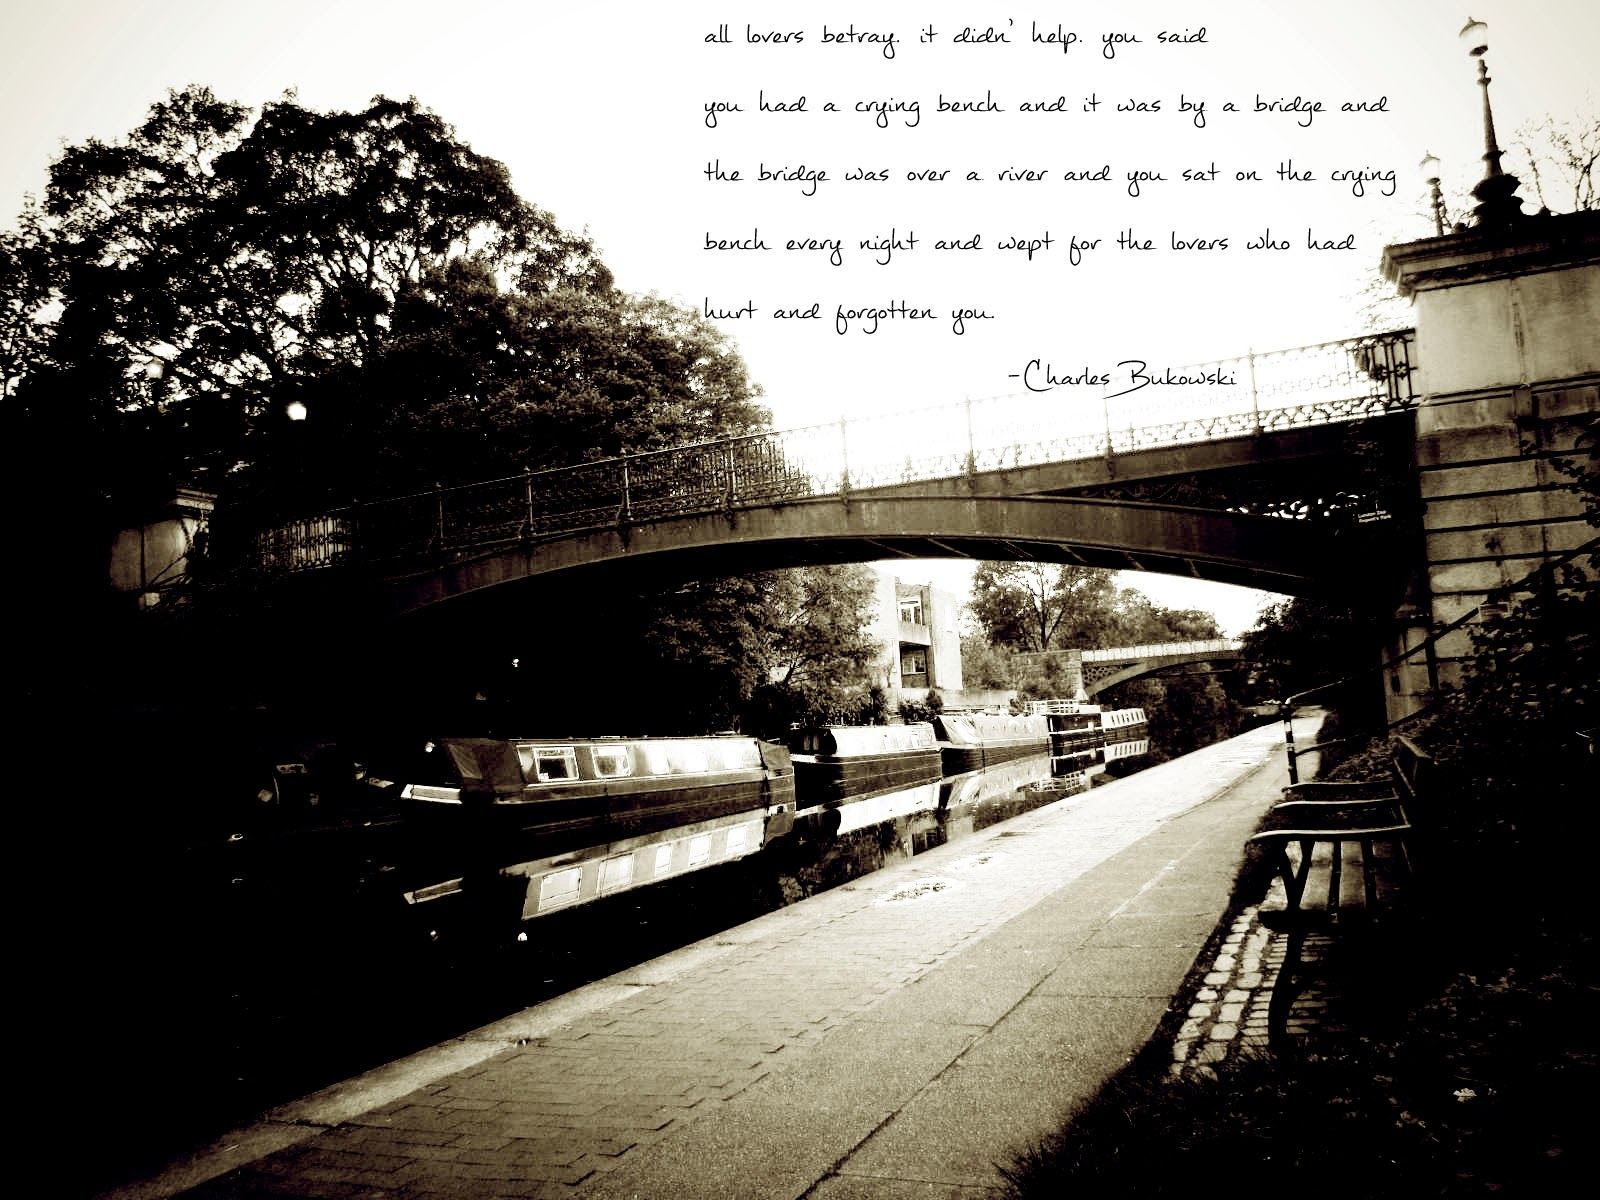 all lovers betray, crying bench, Camden lock, London, poetry, An almost made up poem, Charles Bukowski, black and white, photo, potography